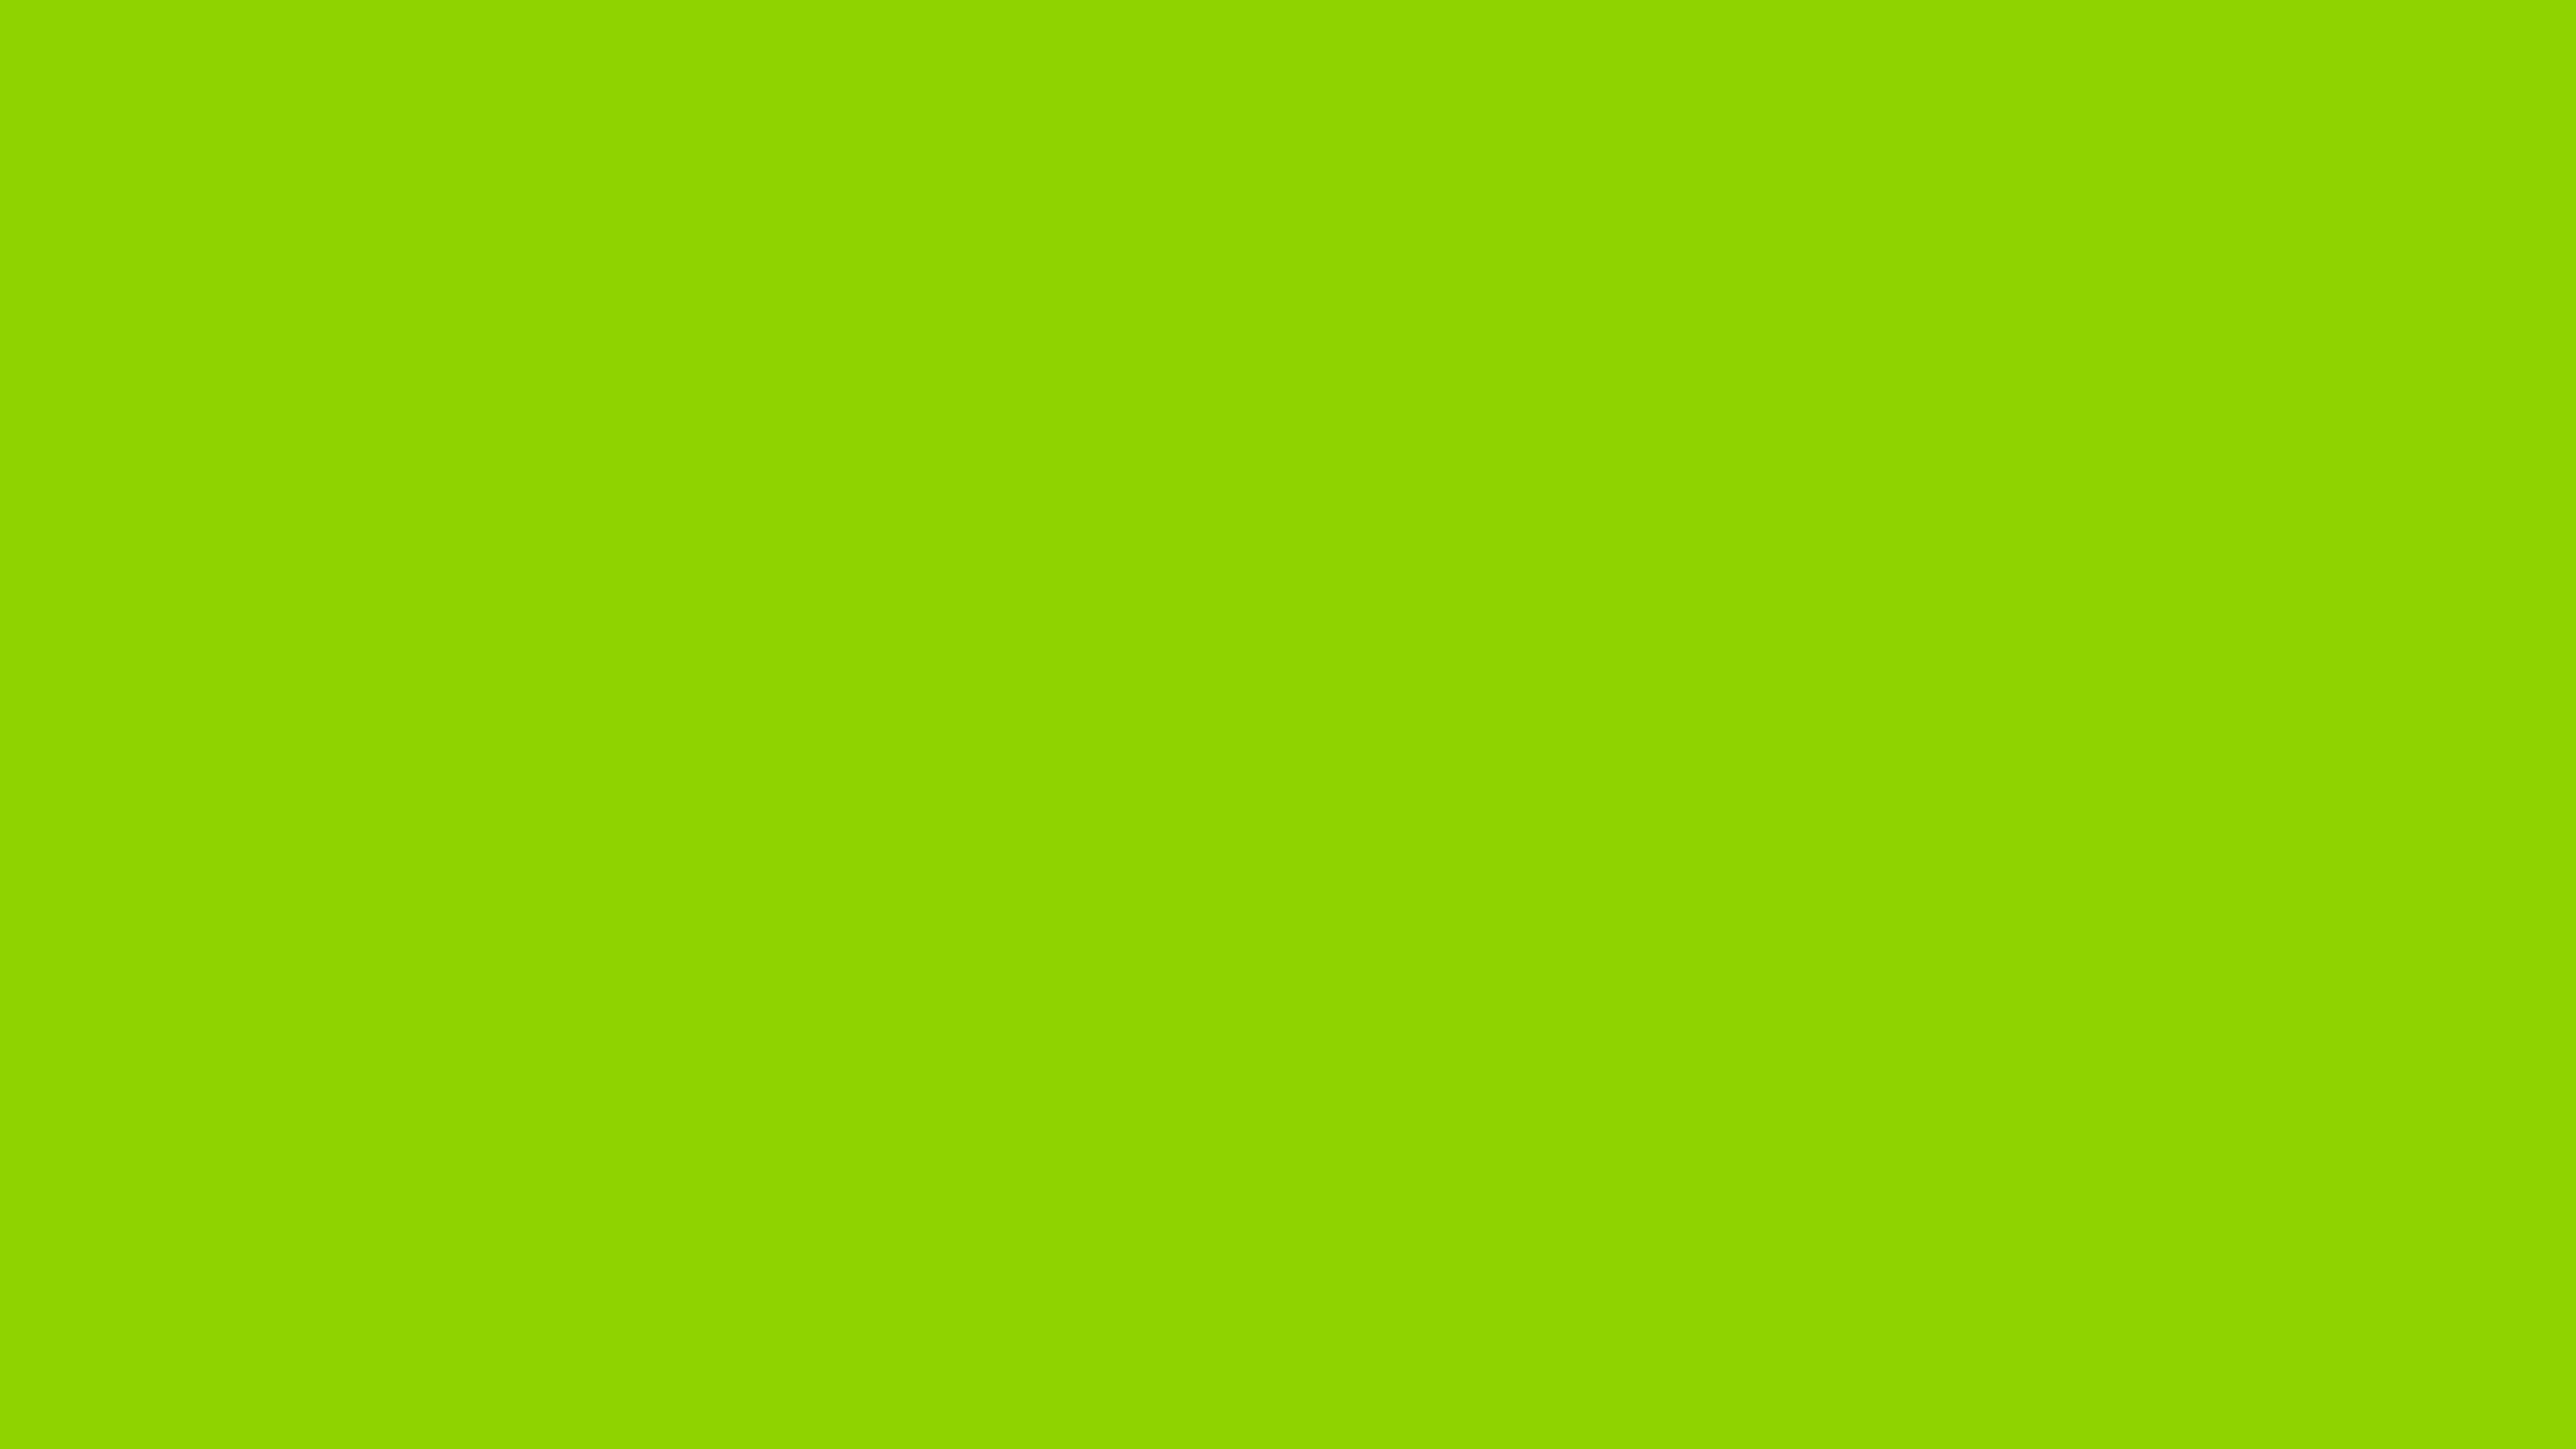 3840x2160 Sheen Green Solid Color Background